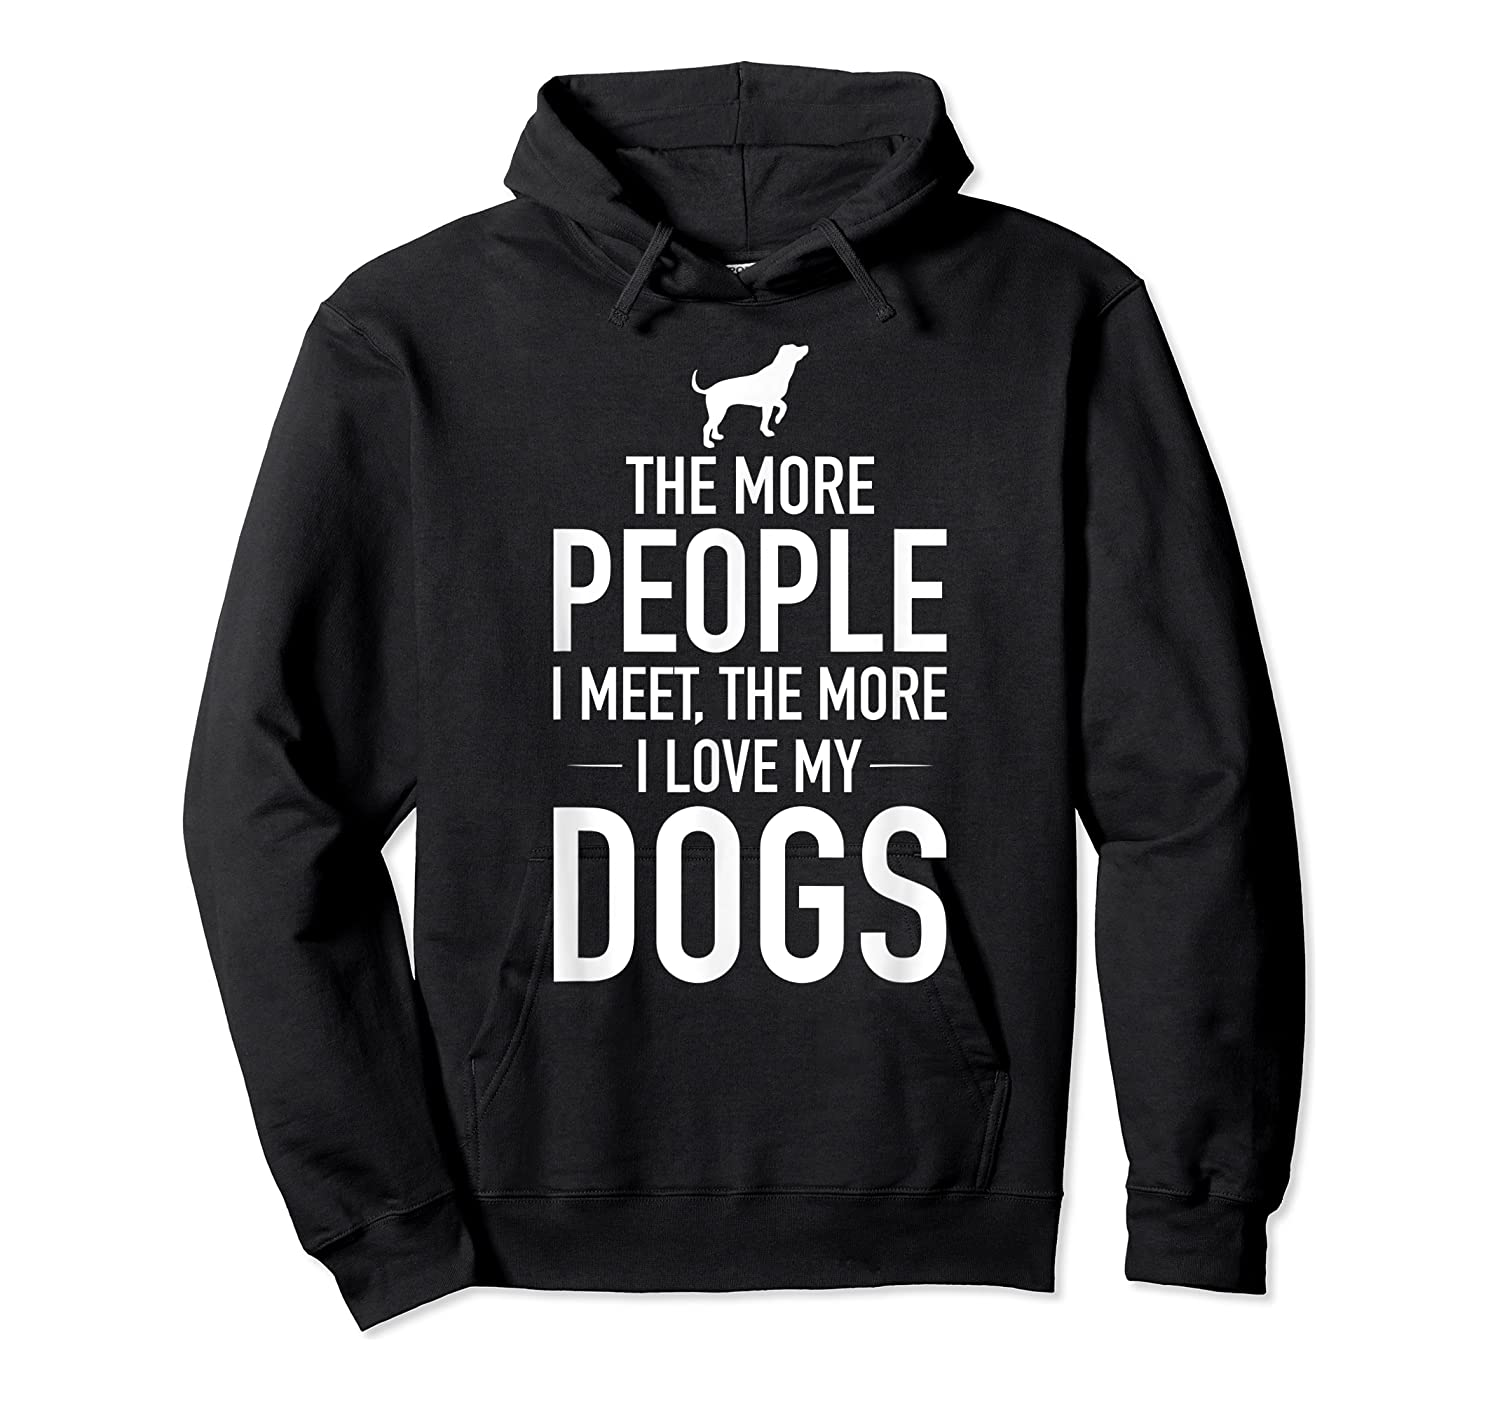 The More People I Meet The More I Love My Dogs, Funny, Gift Shirts Unisex Pullover Hoodie